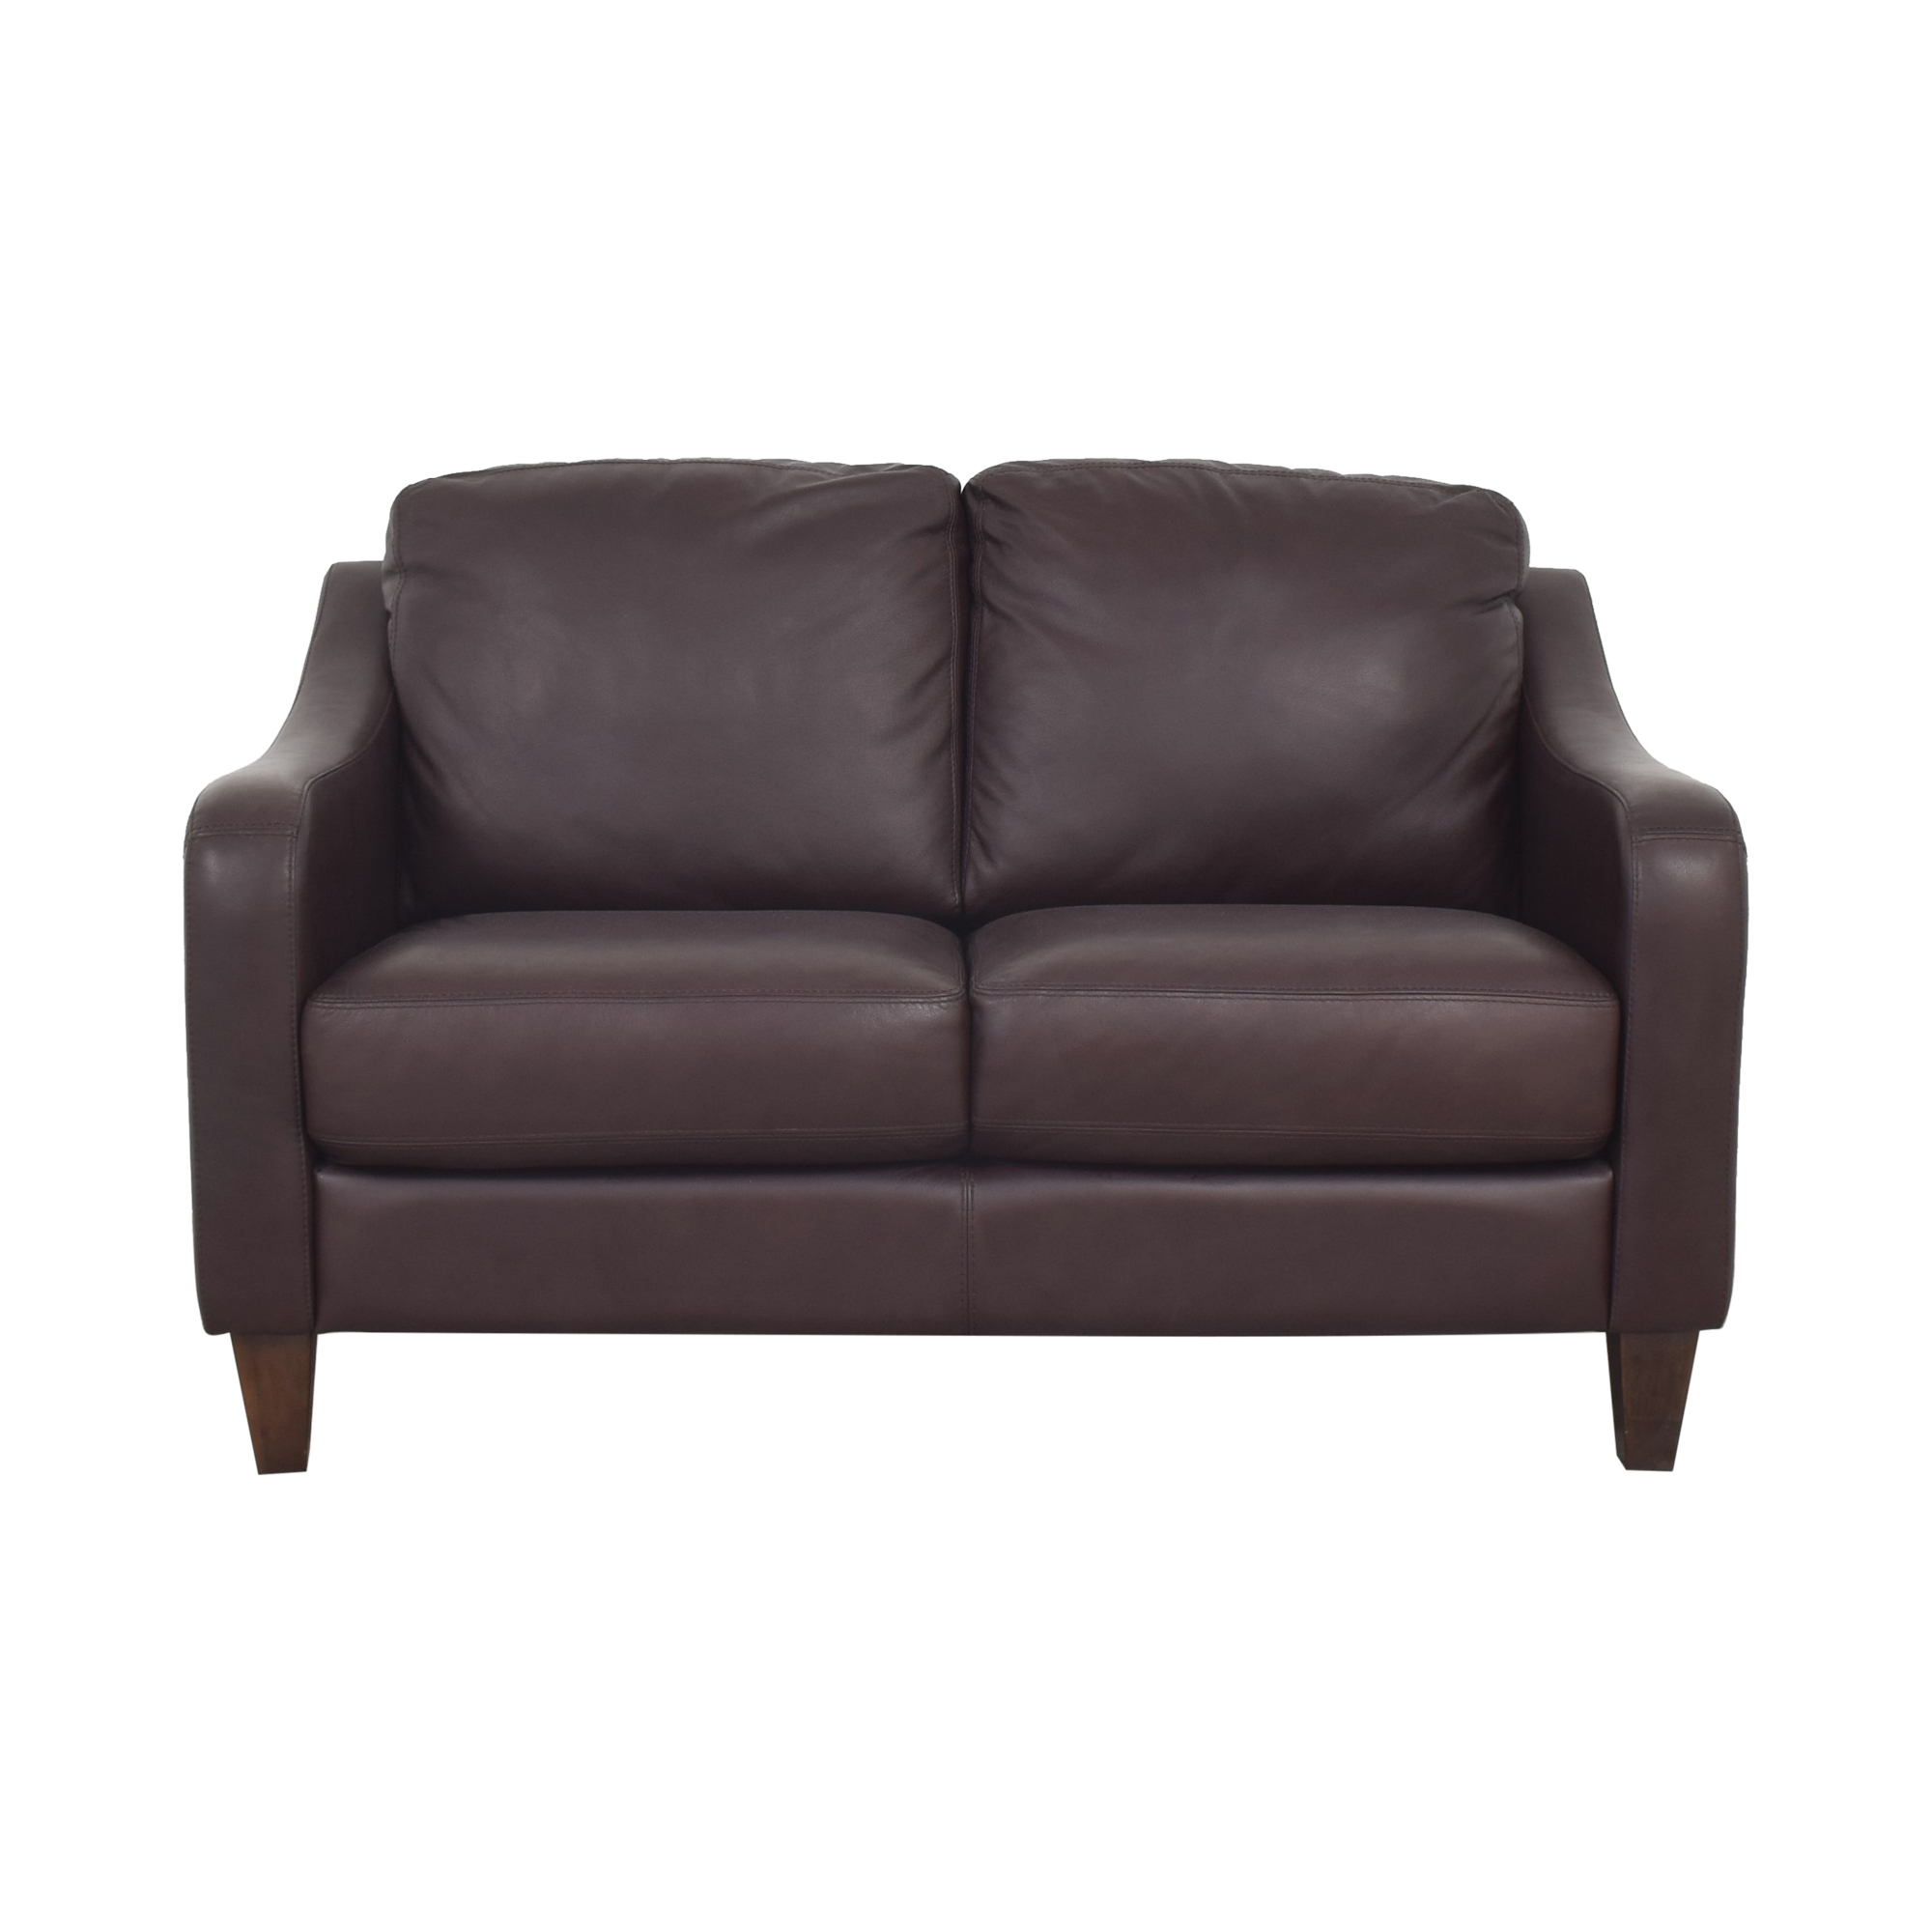 Chateau d'Ax Slope Arm Loveseat Chateau d'Ax